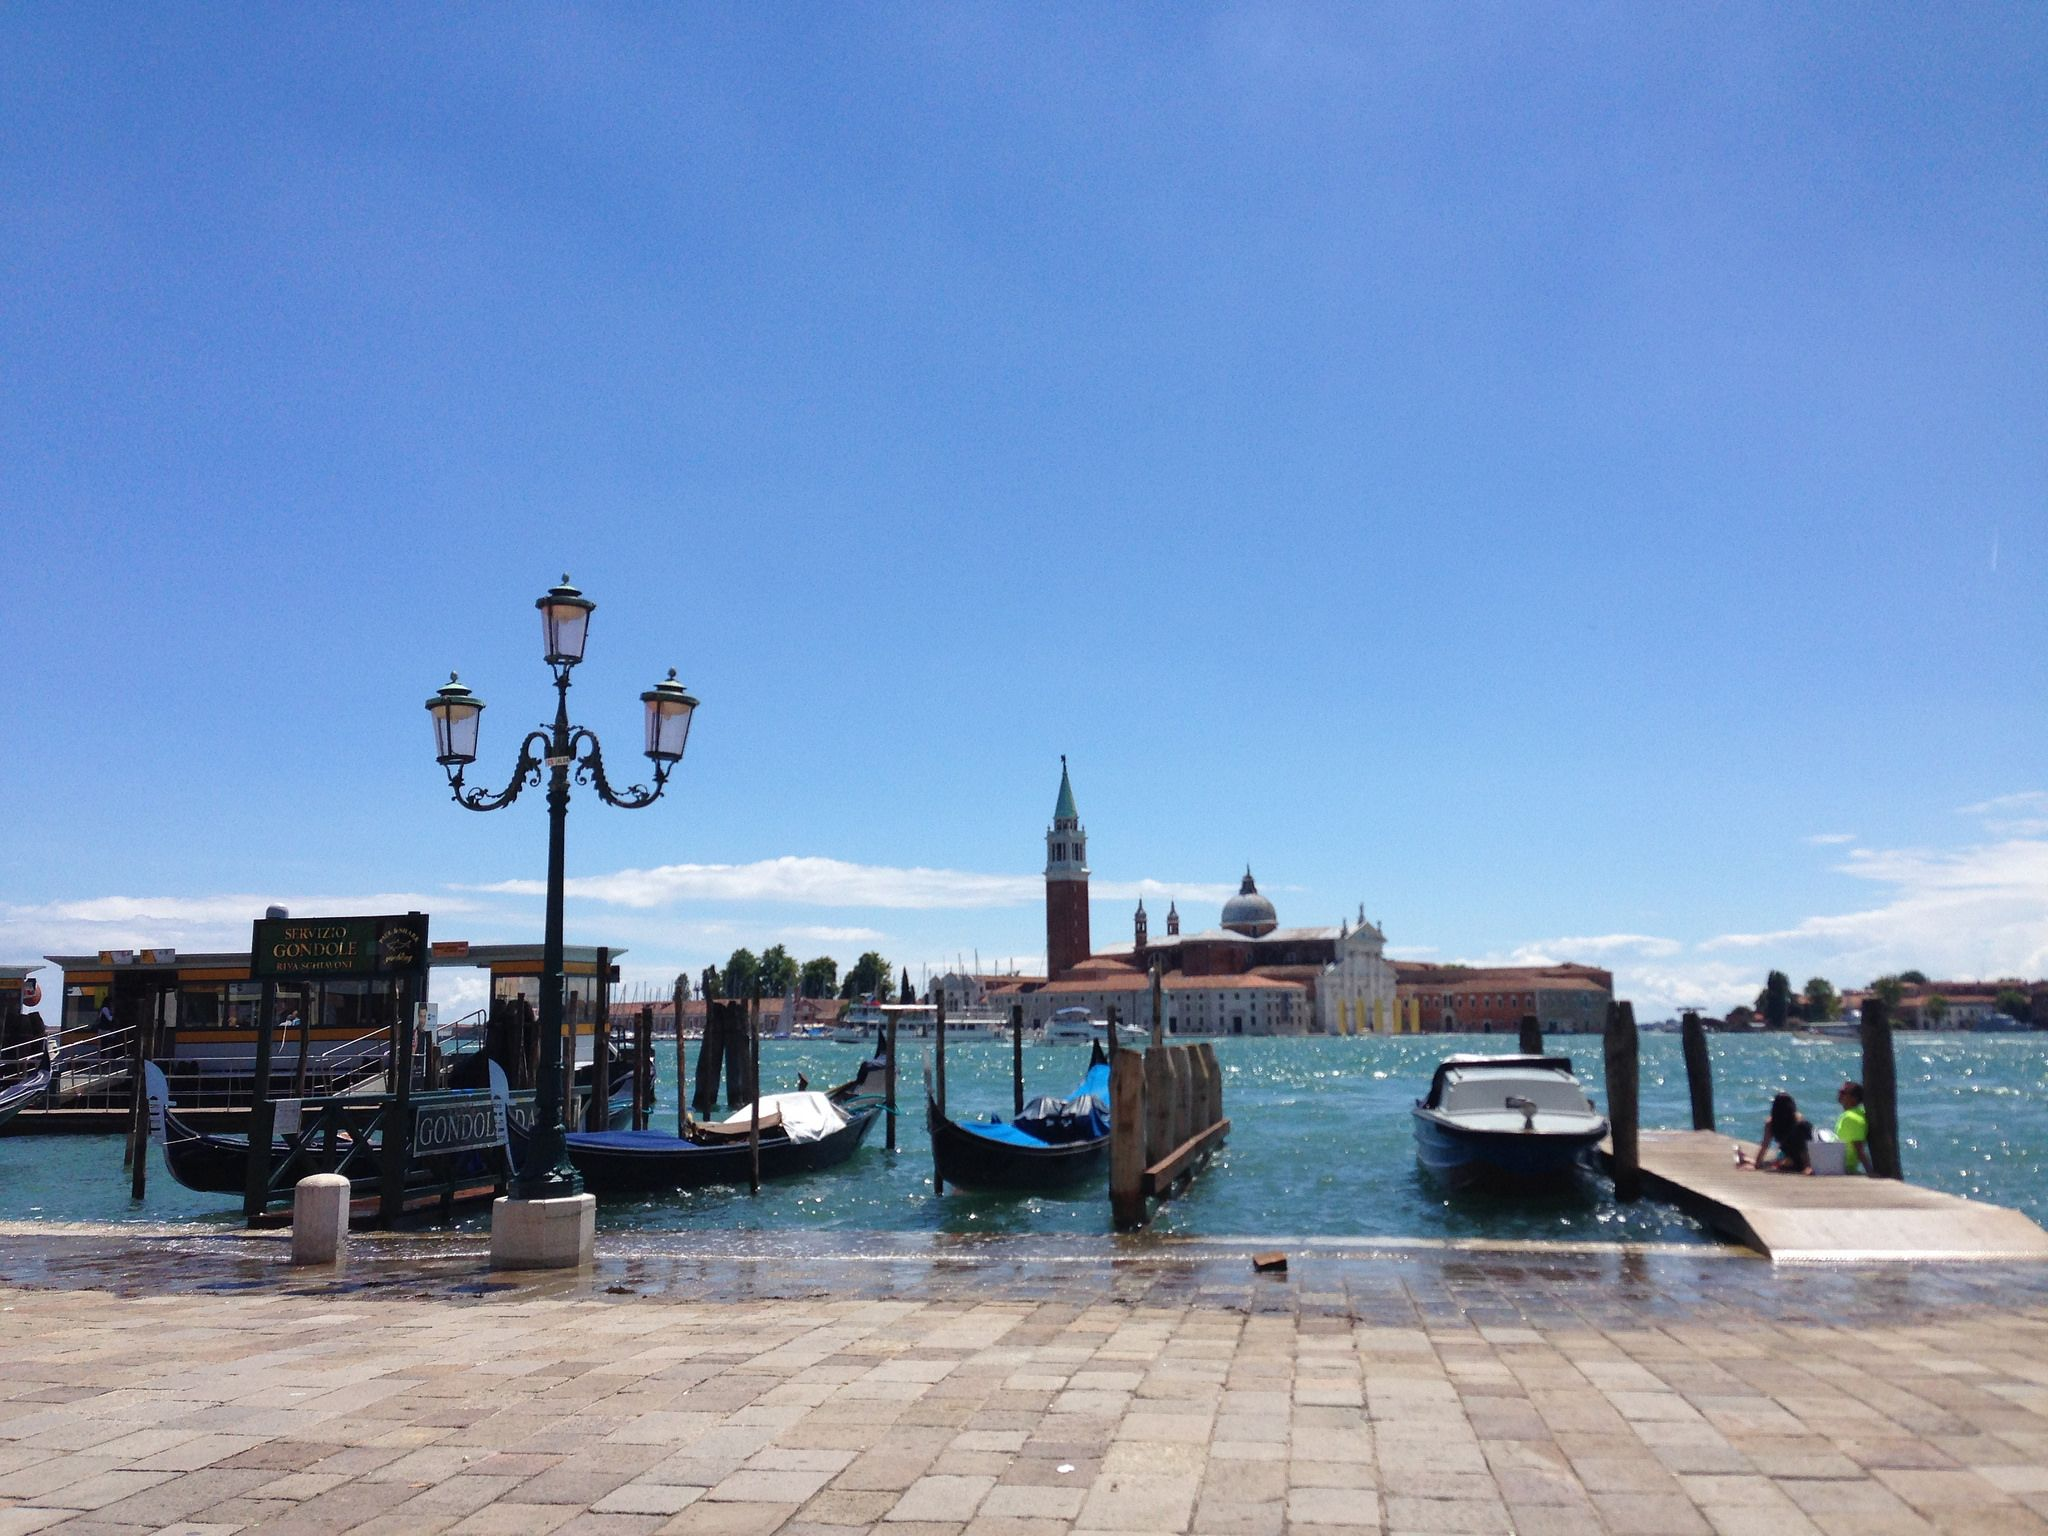 20140713 13.23.59 Italy travel, Italy, Places to visit